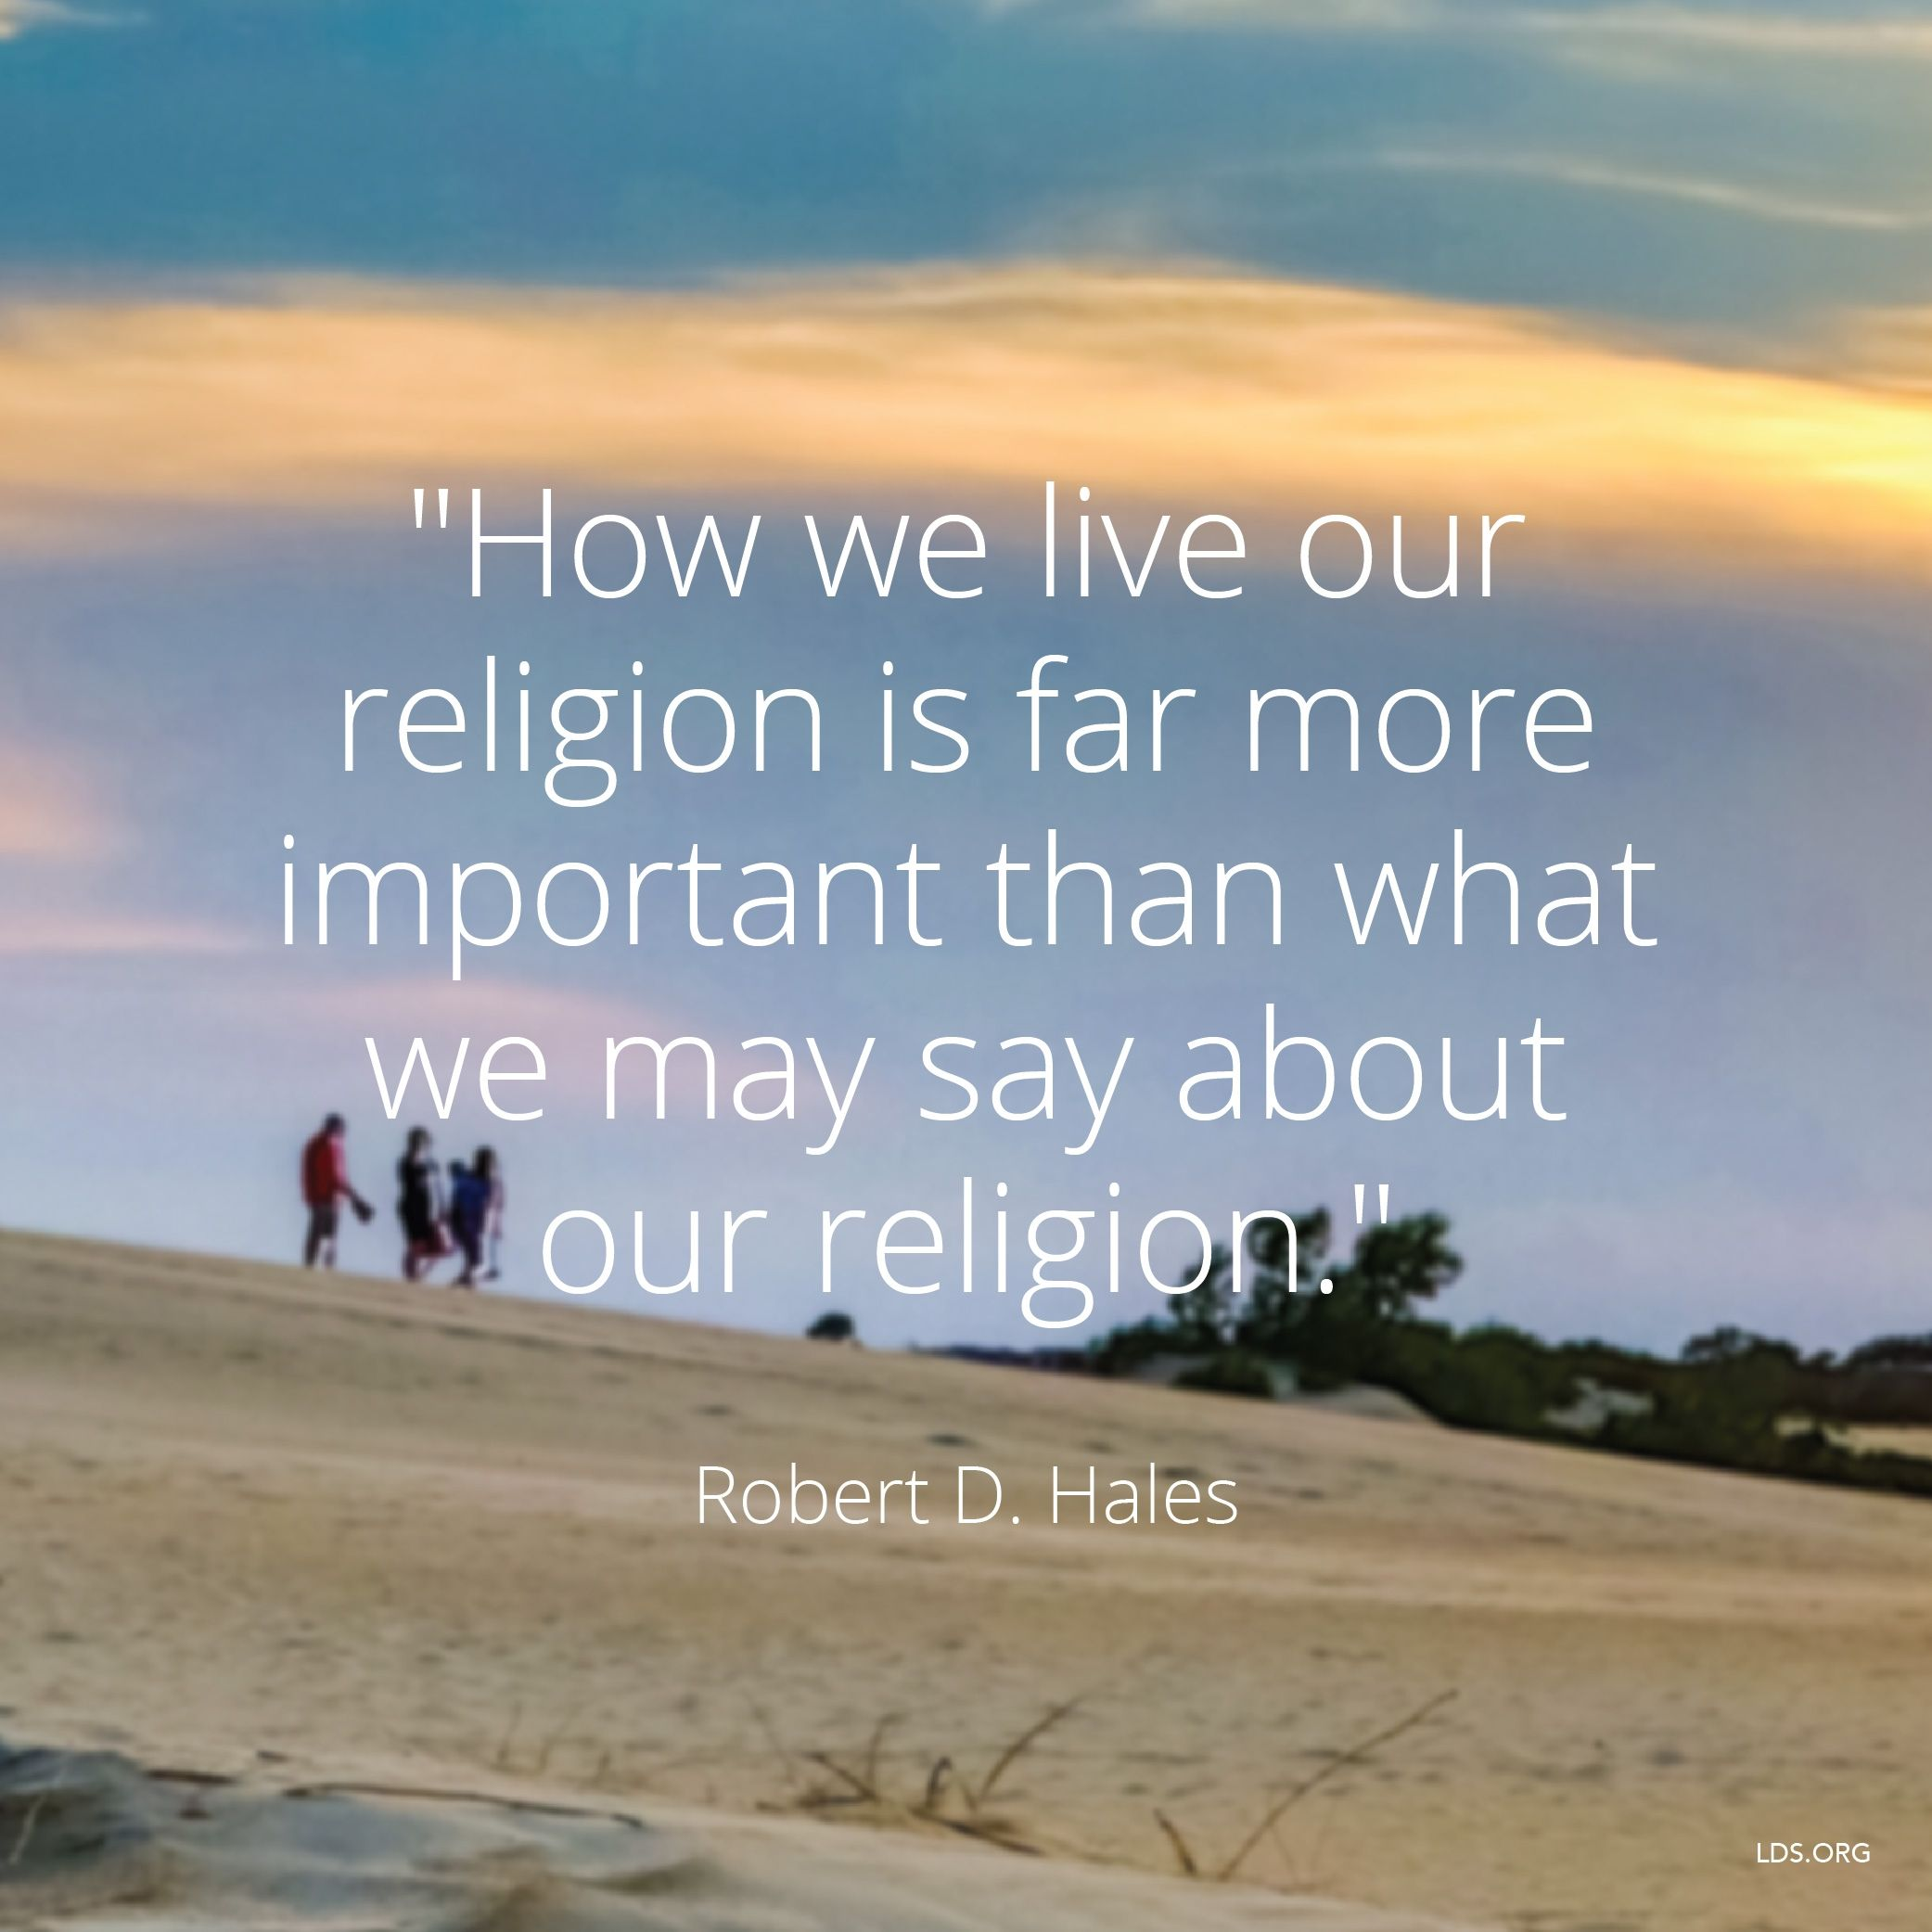 """""""How we live our religion is far more important than what we may say about our religion.""""—Elder Robert D. Hales, """"Preserving Agency, Protecting Religious Freedom"""""""